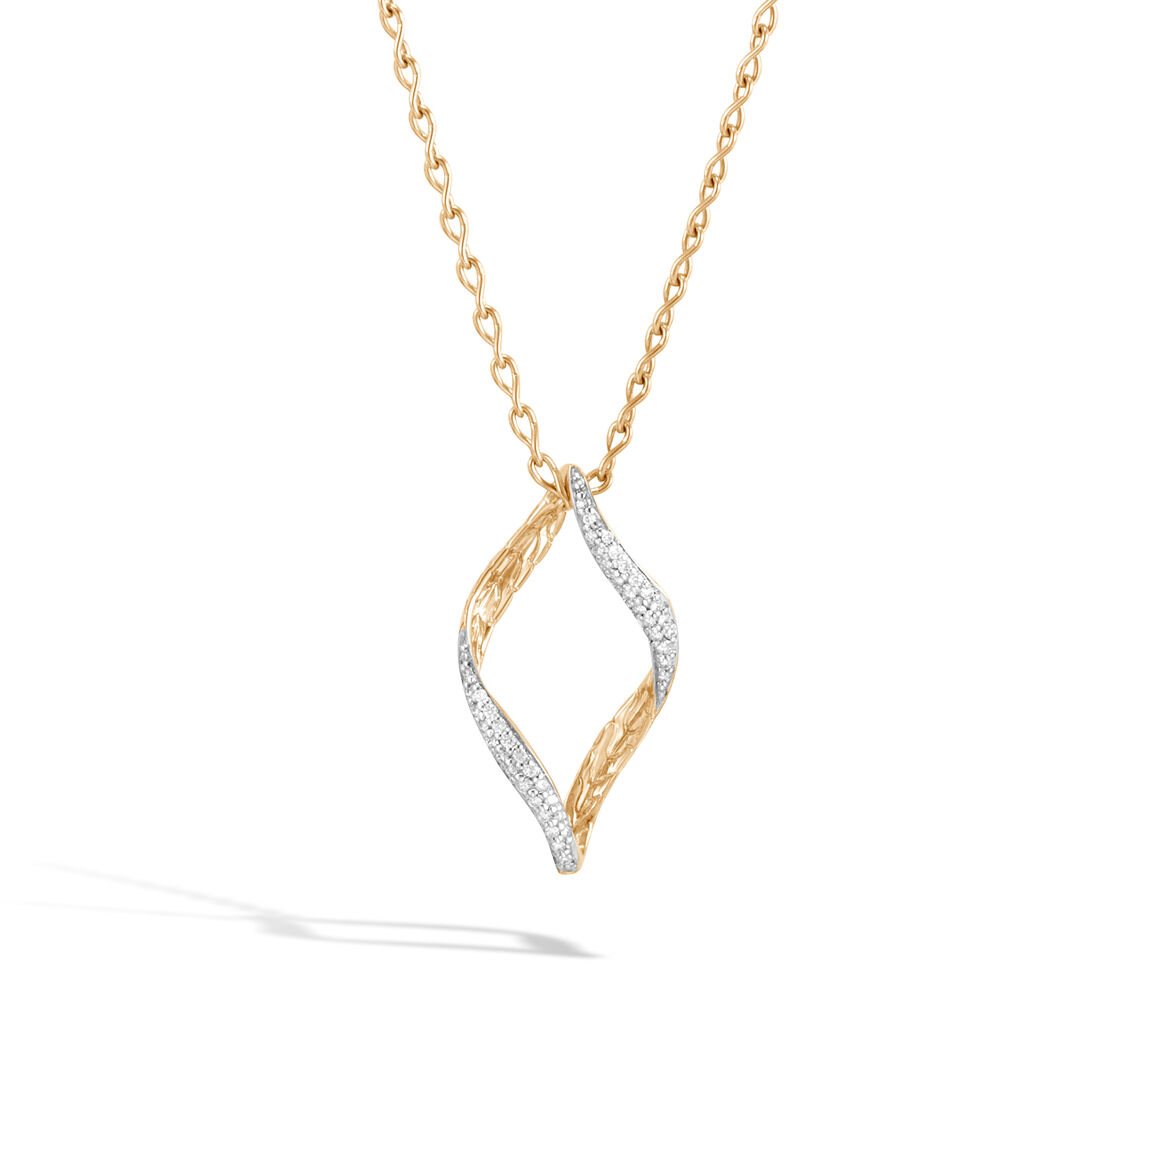 Classic Chain Wave Pendant Necklace in 18K Gold,  Diamonds